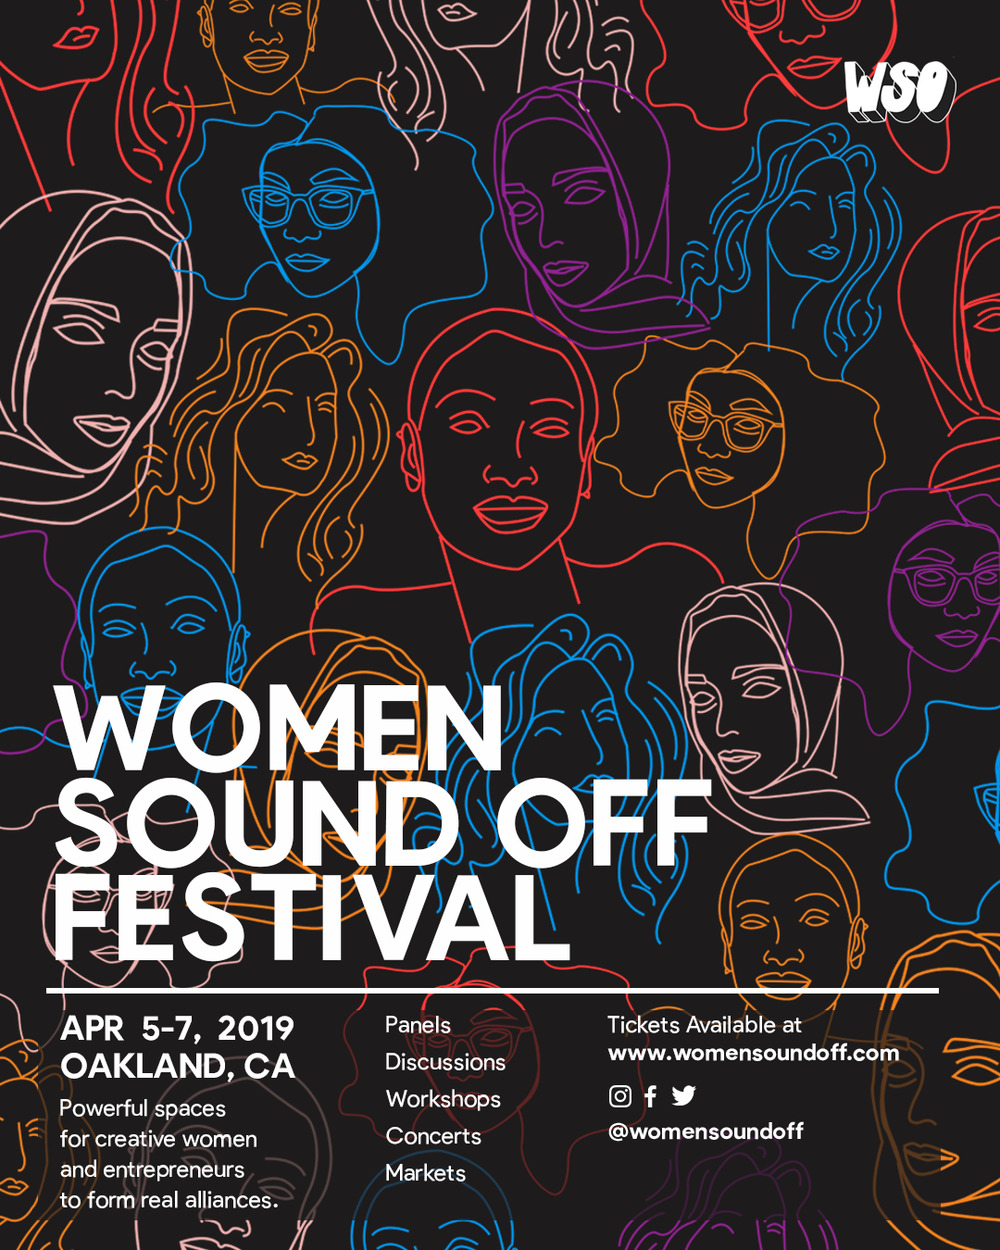 women+sound+off+festival+2019.png